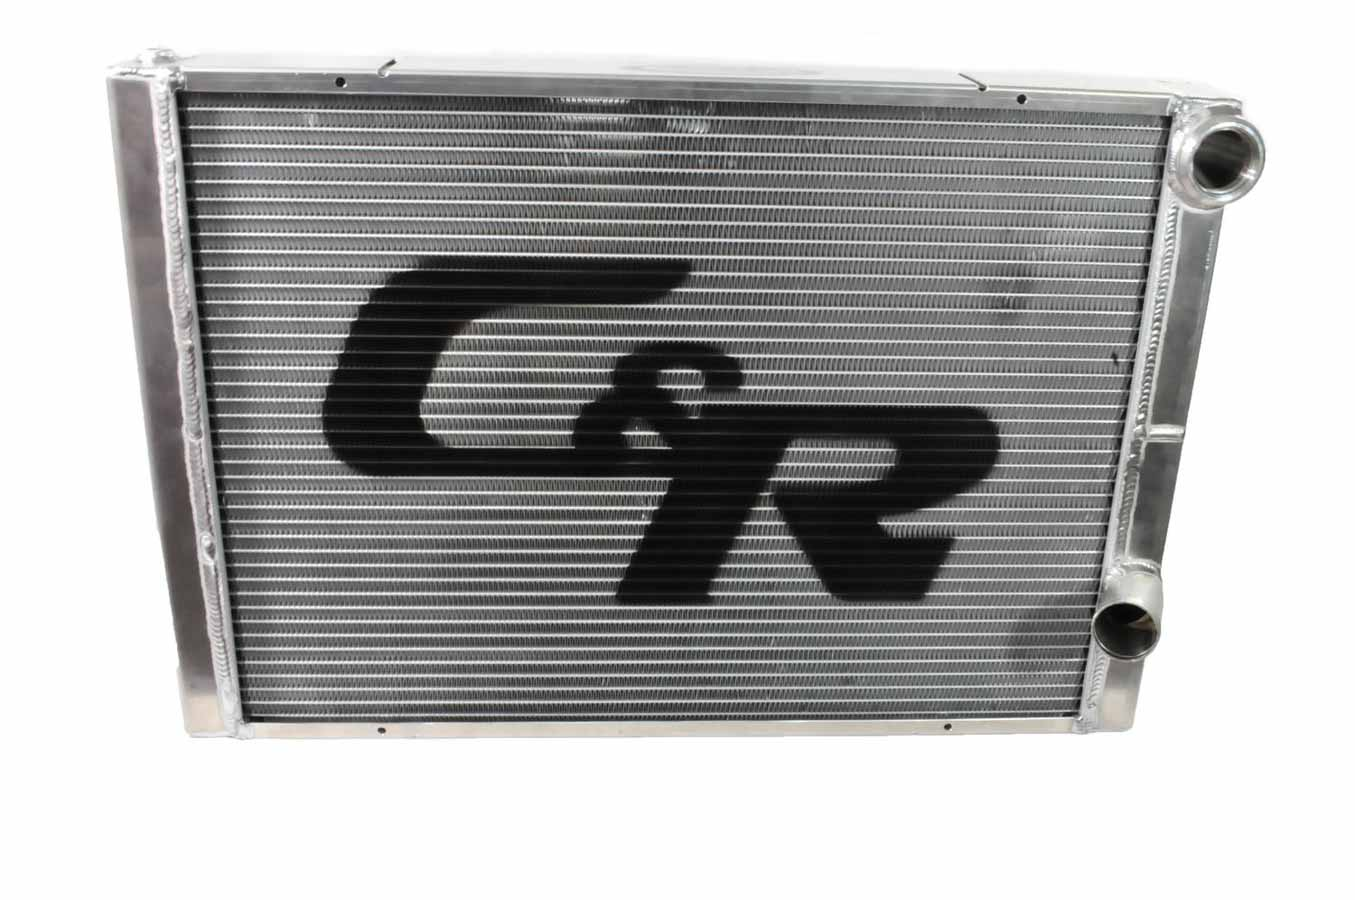 """C AND R 28"""" W x 19"""" H x 1-3 4"""" D Aluminum Dual Pass Radiator P N 804-28191 by C AND R Racing Radiators"""